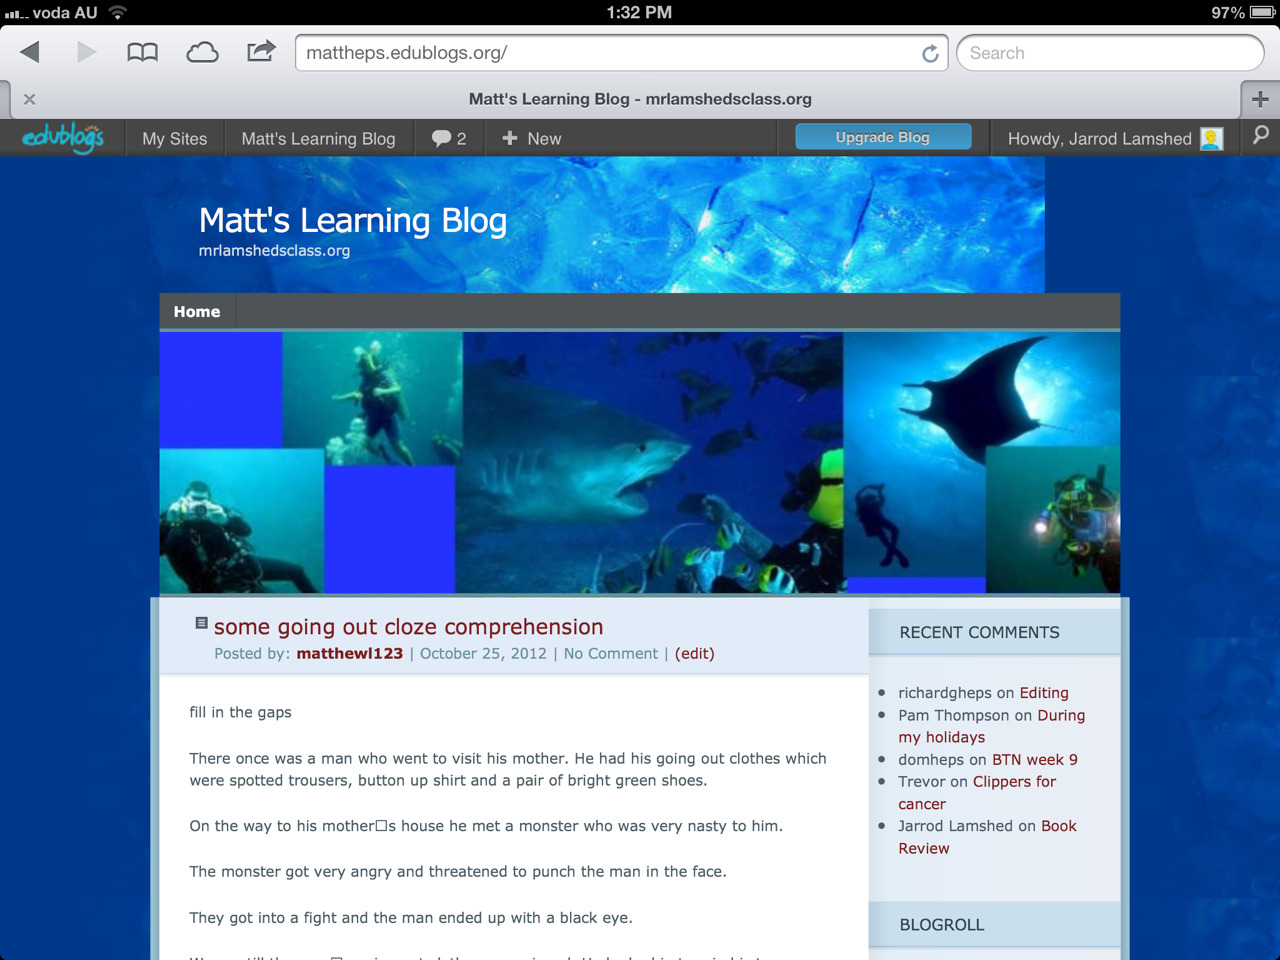 I think that everyone should look at my brother Matthew's blog. He works very hard on it and it has lots of his work from school on it and some really good pictures of underwater stuff. Please go and visit it at http://mattheps.edublogs.org . I hope everyone is having a good day. Bye.